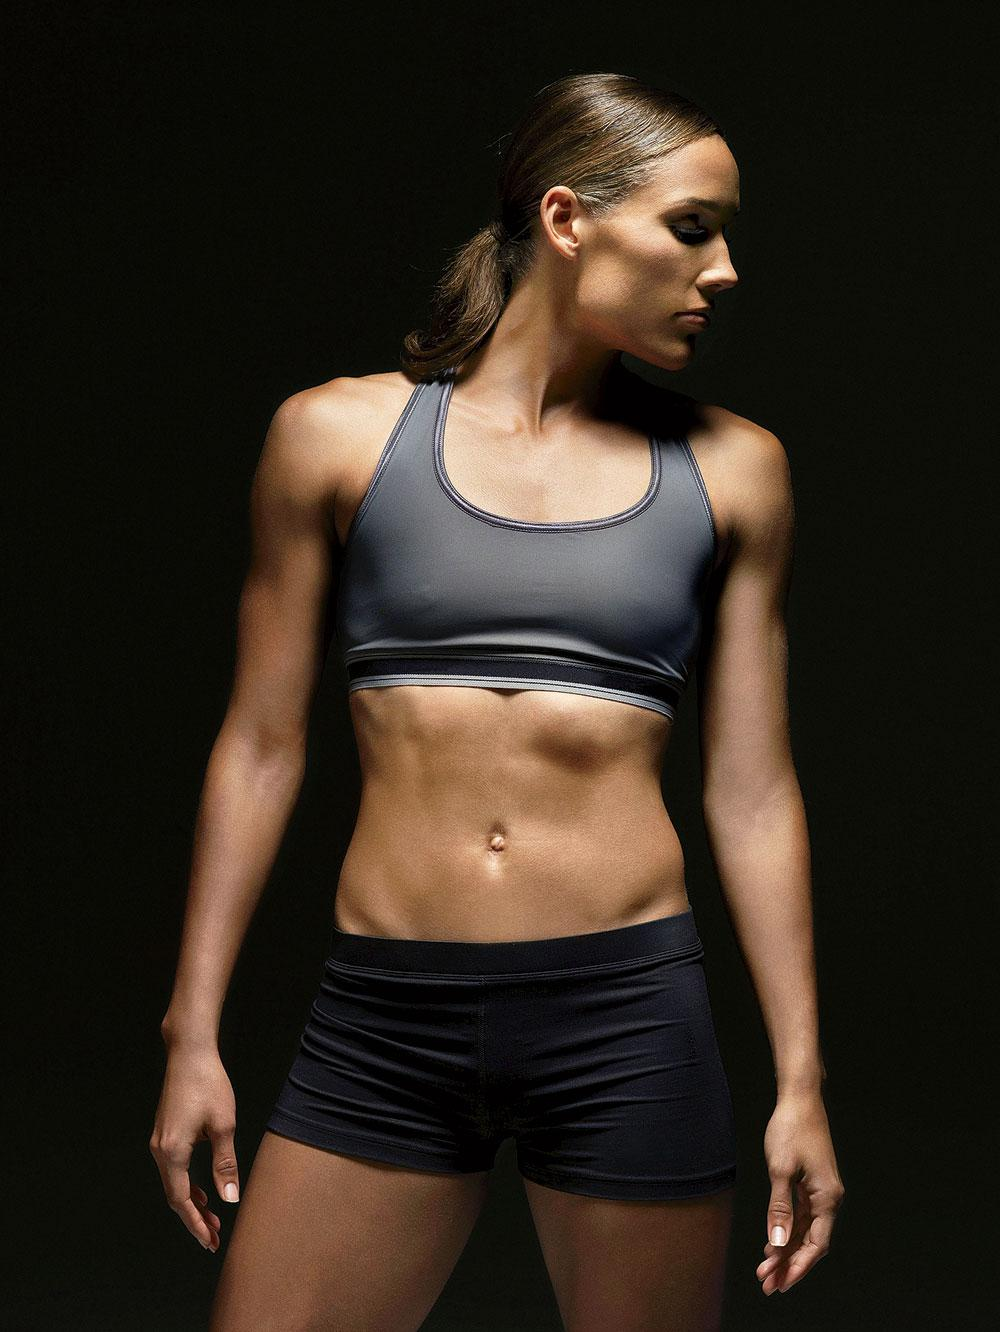 27 lolo jones - fittest bodies in spots